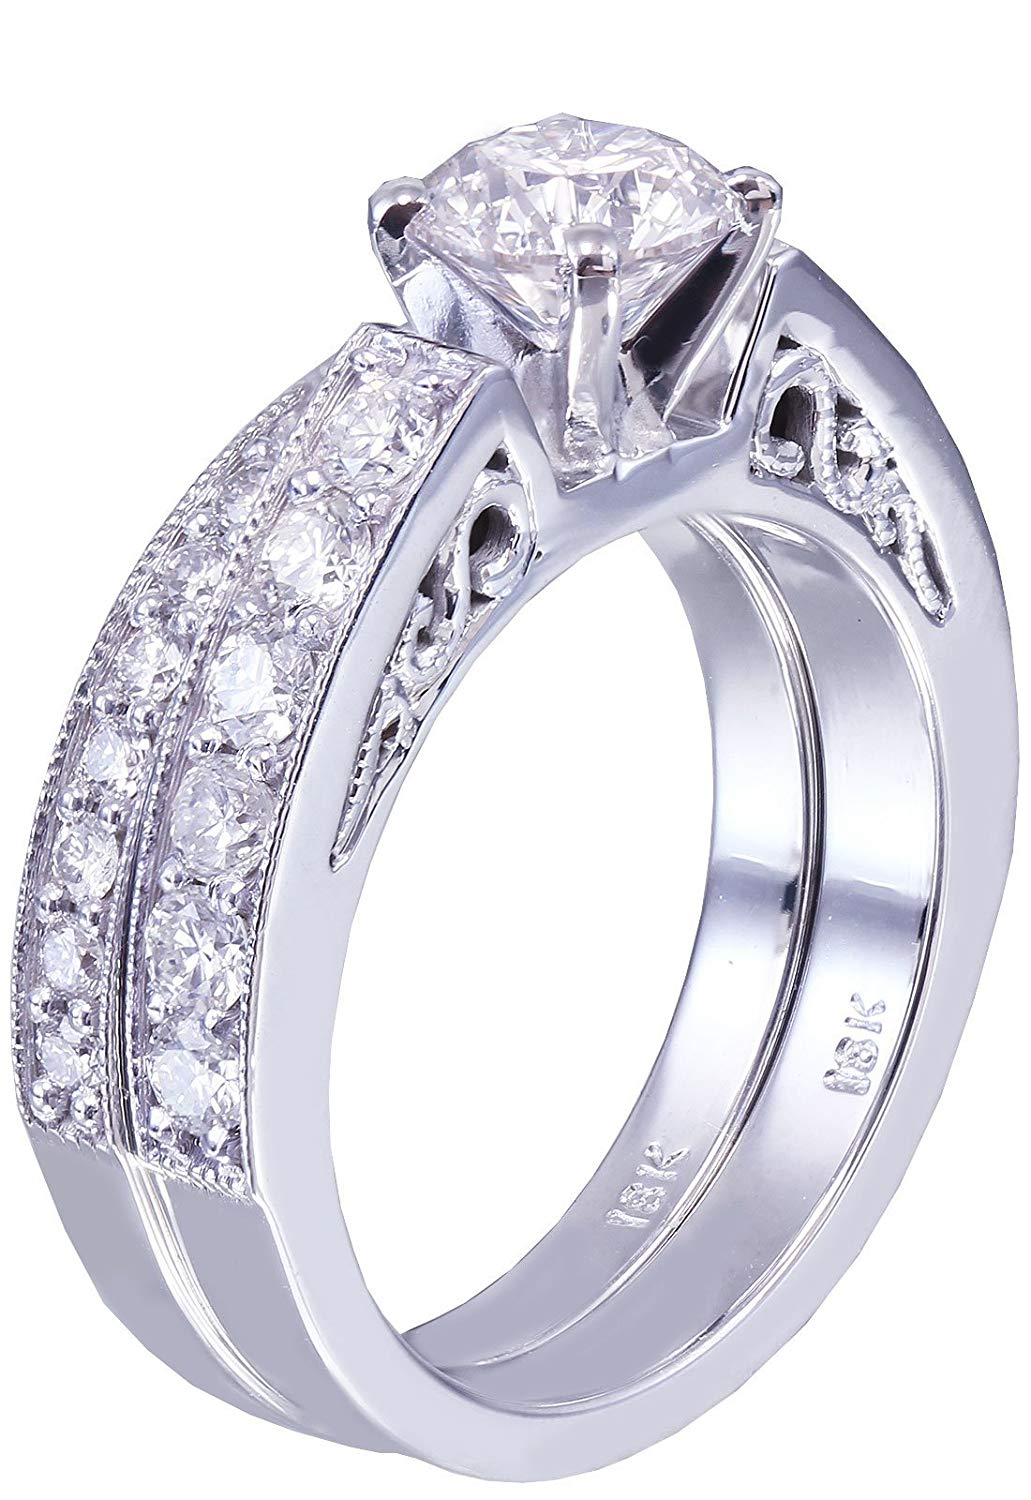 14k White Gold Round Cut Diamond Engagement Ring And Band Art Deco Antique Style 1.25ctw